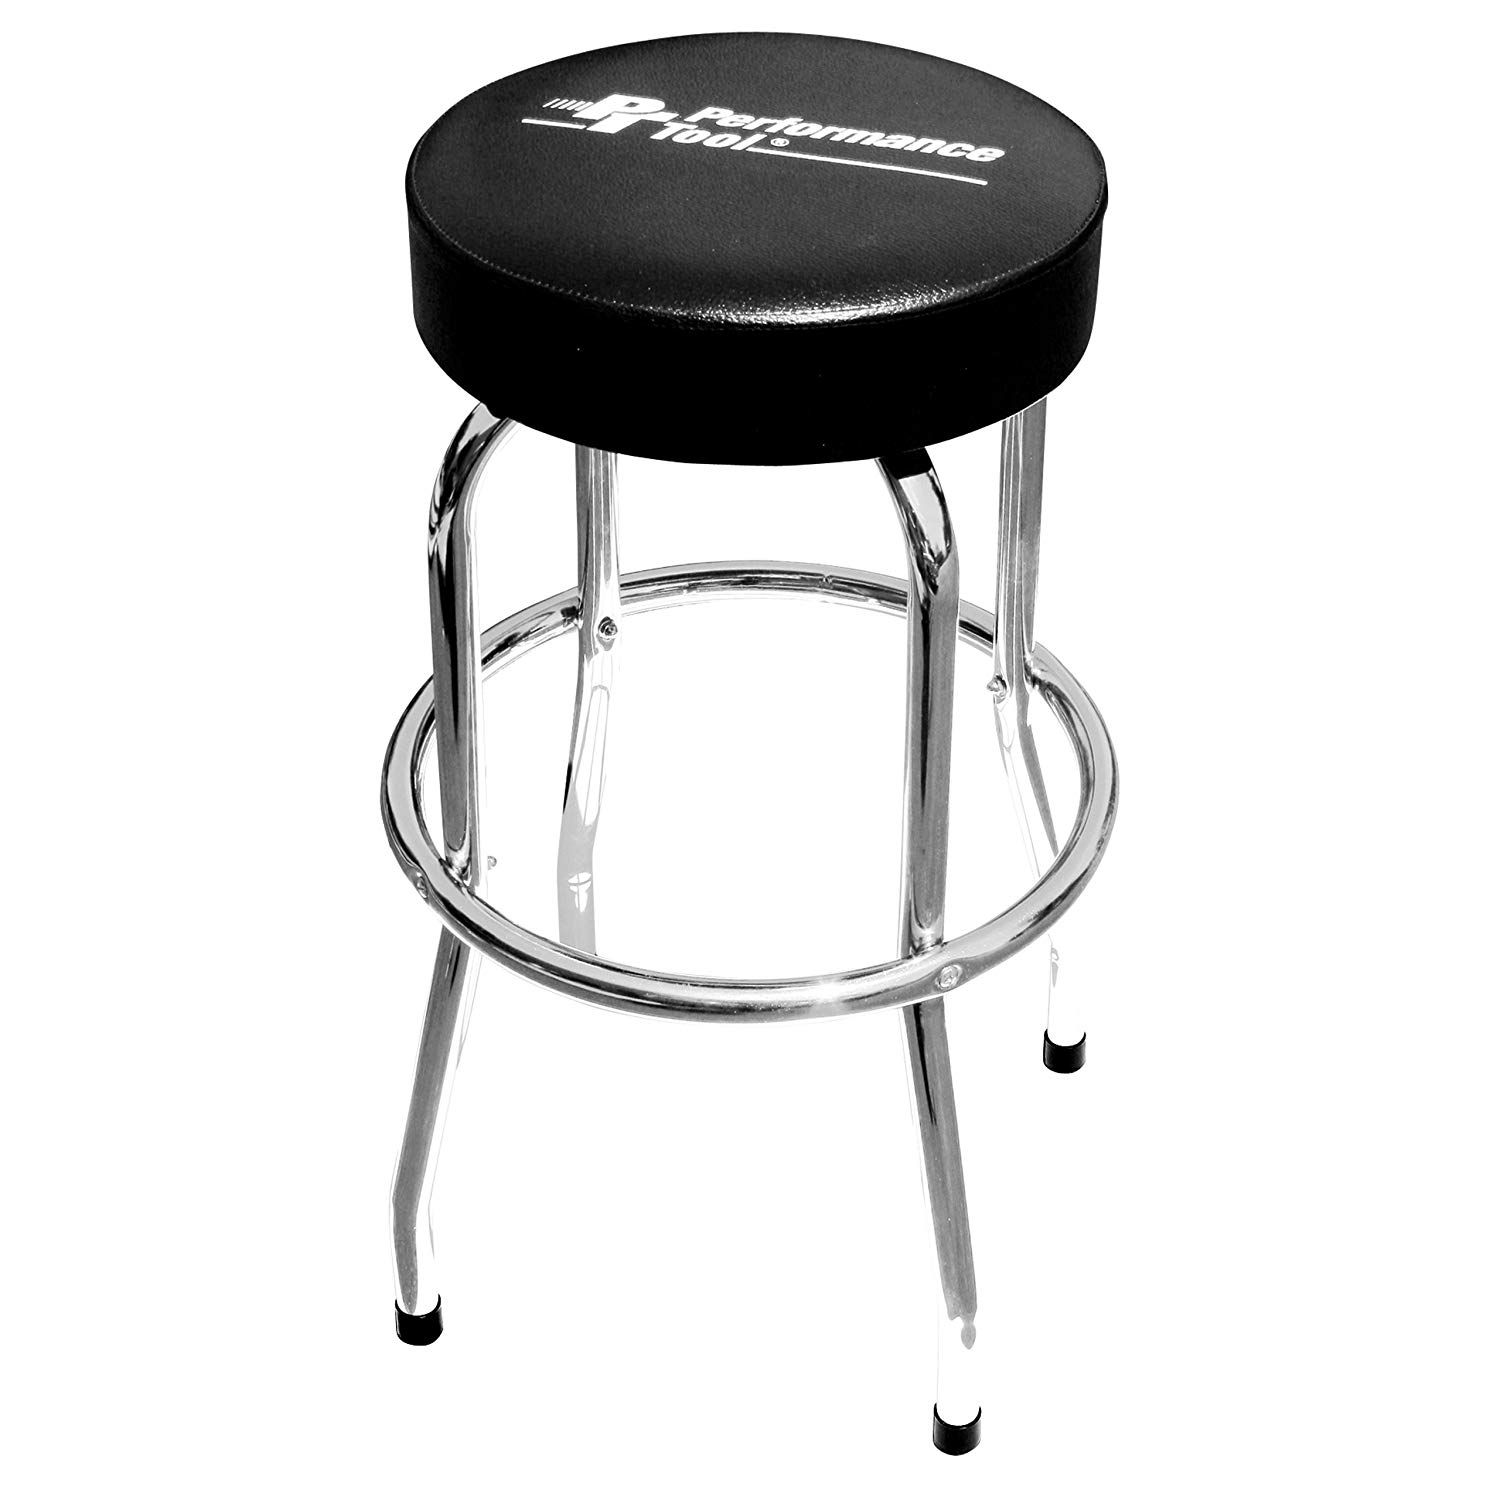 Performance Tool W85010 Bar Stool With Swivel Seat In 2020 Bar Stools Shop Stool Adjustable Bar Stools